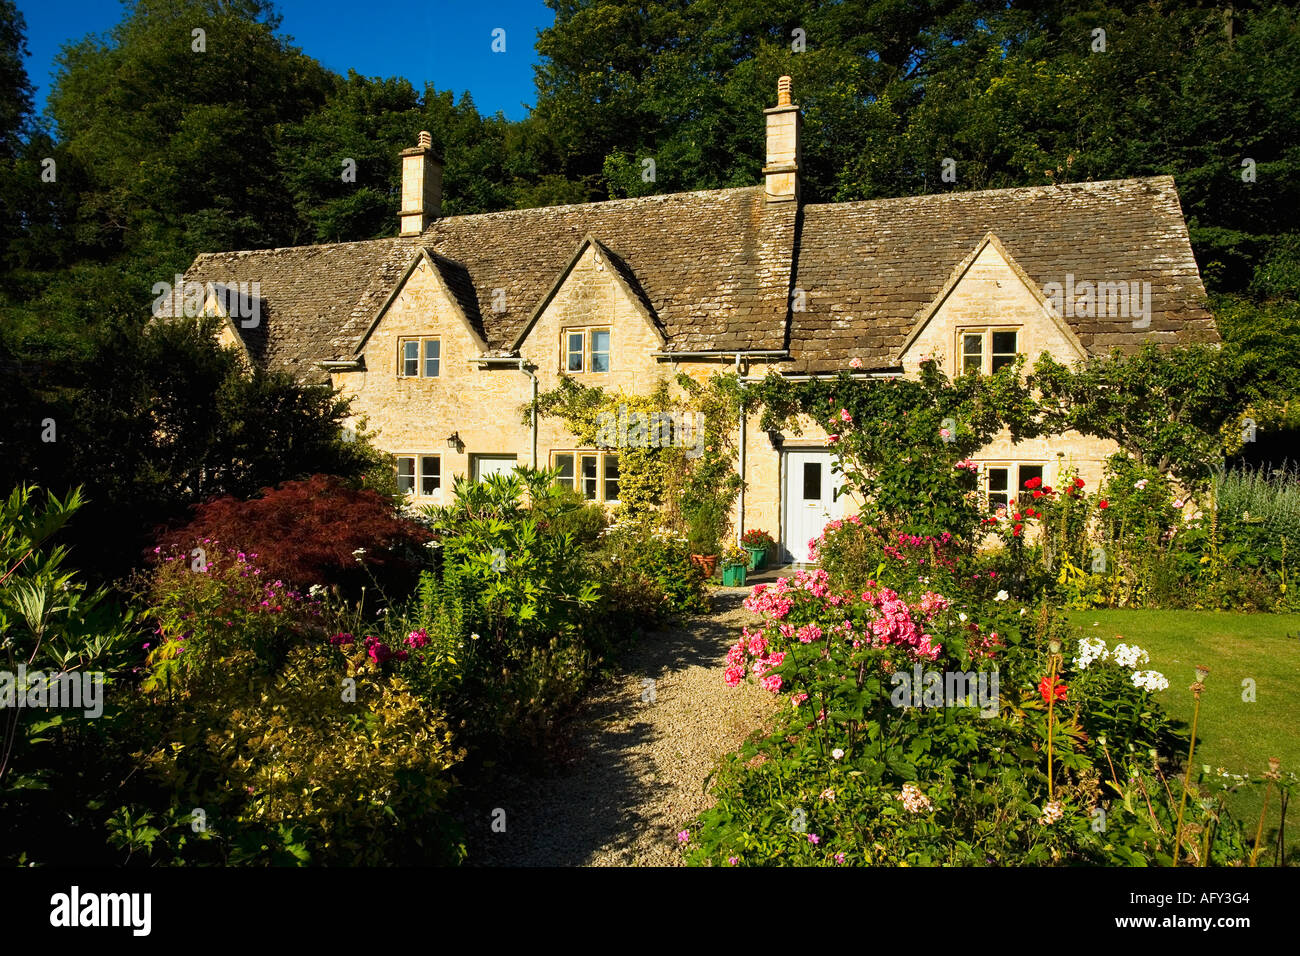 Ancient Cottages Traditional English Cottage Gardens With Flowers In Summer Sunshine Blue Sky At Bibury Cotswolds UK GB